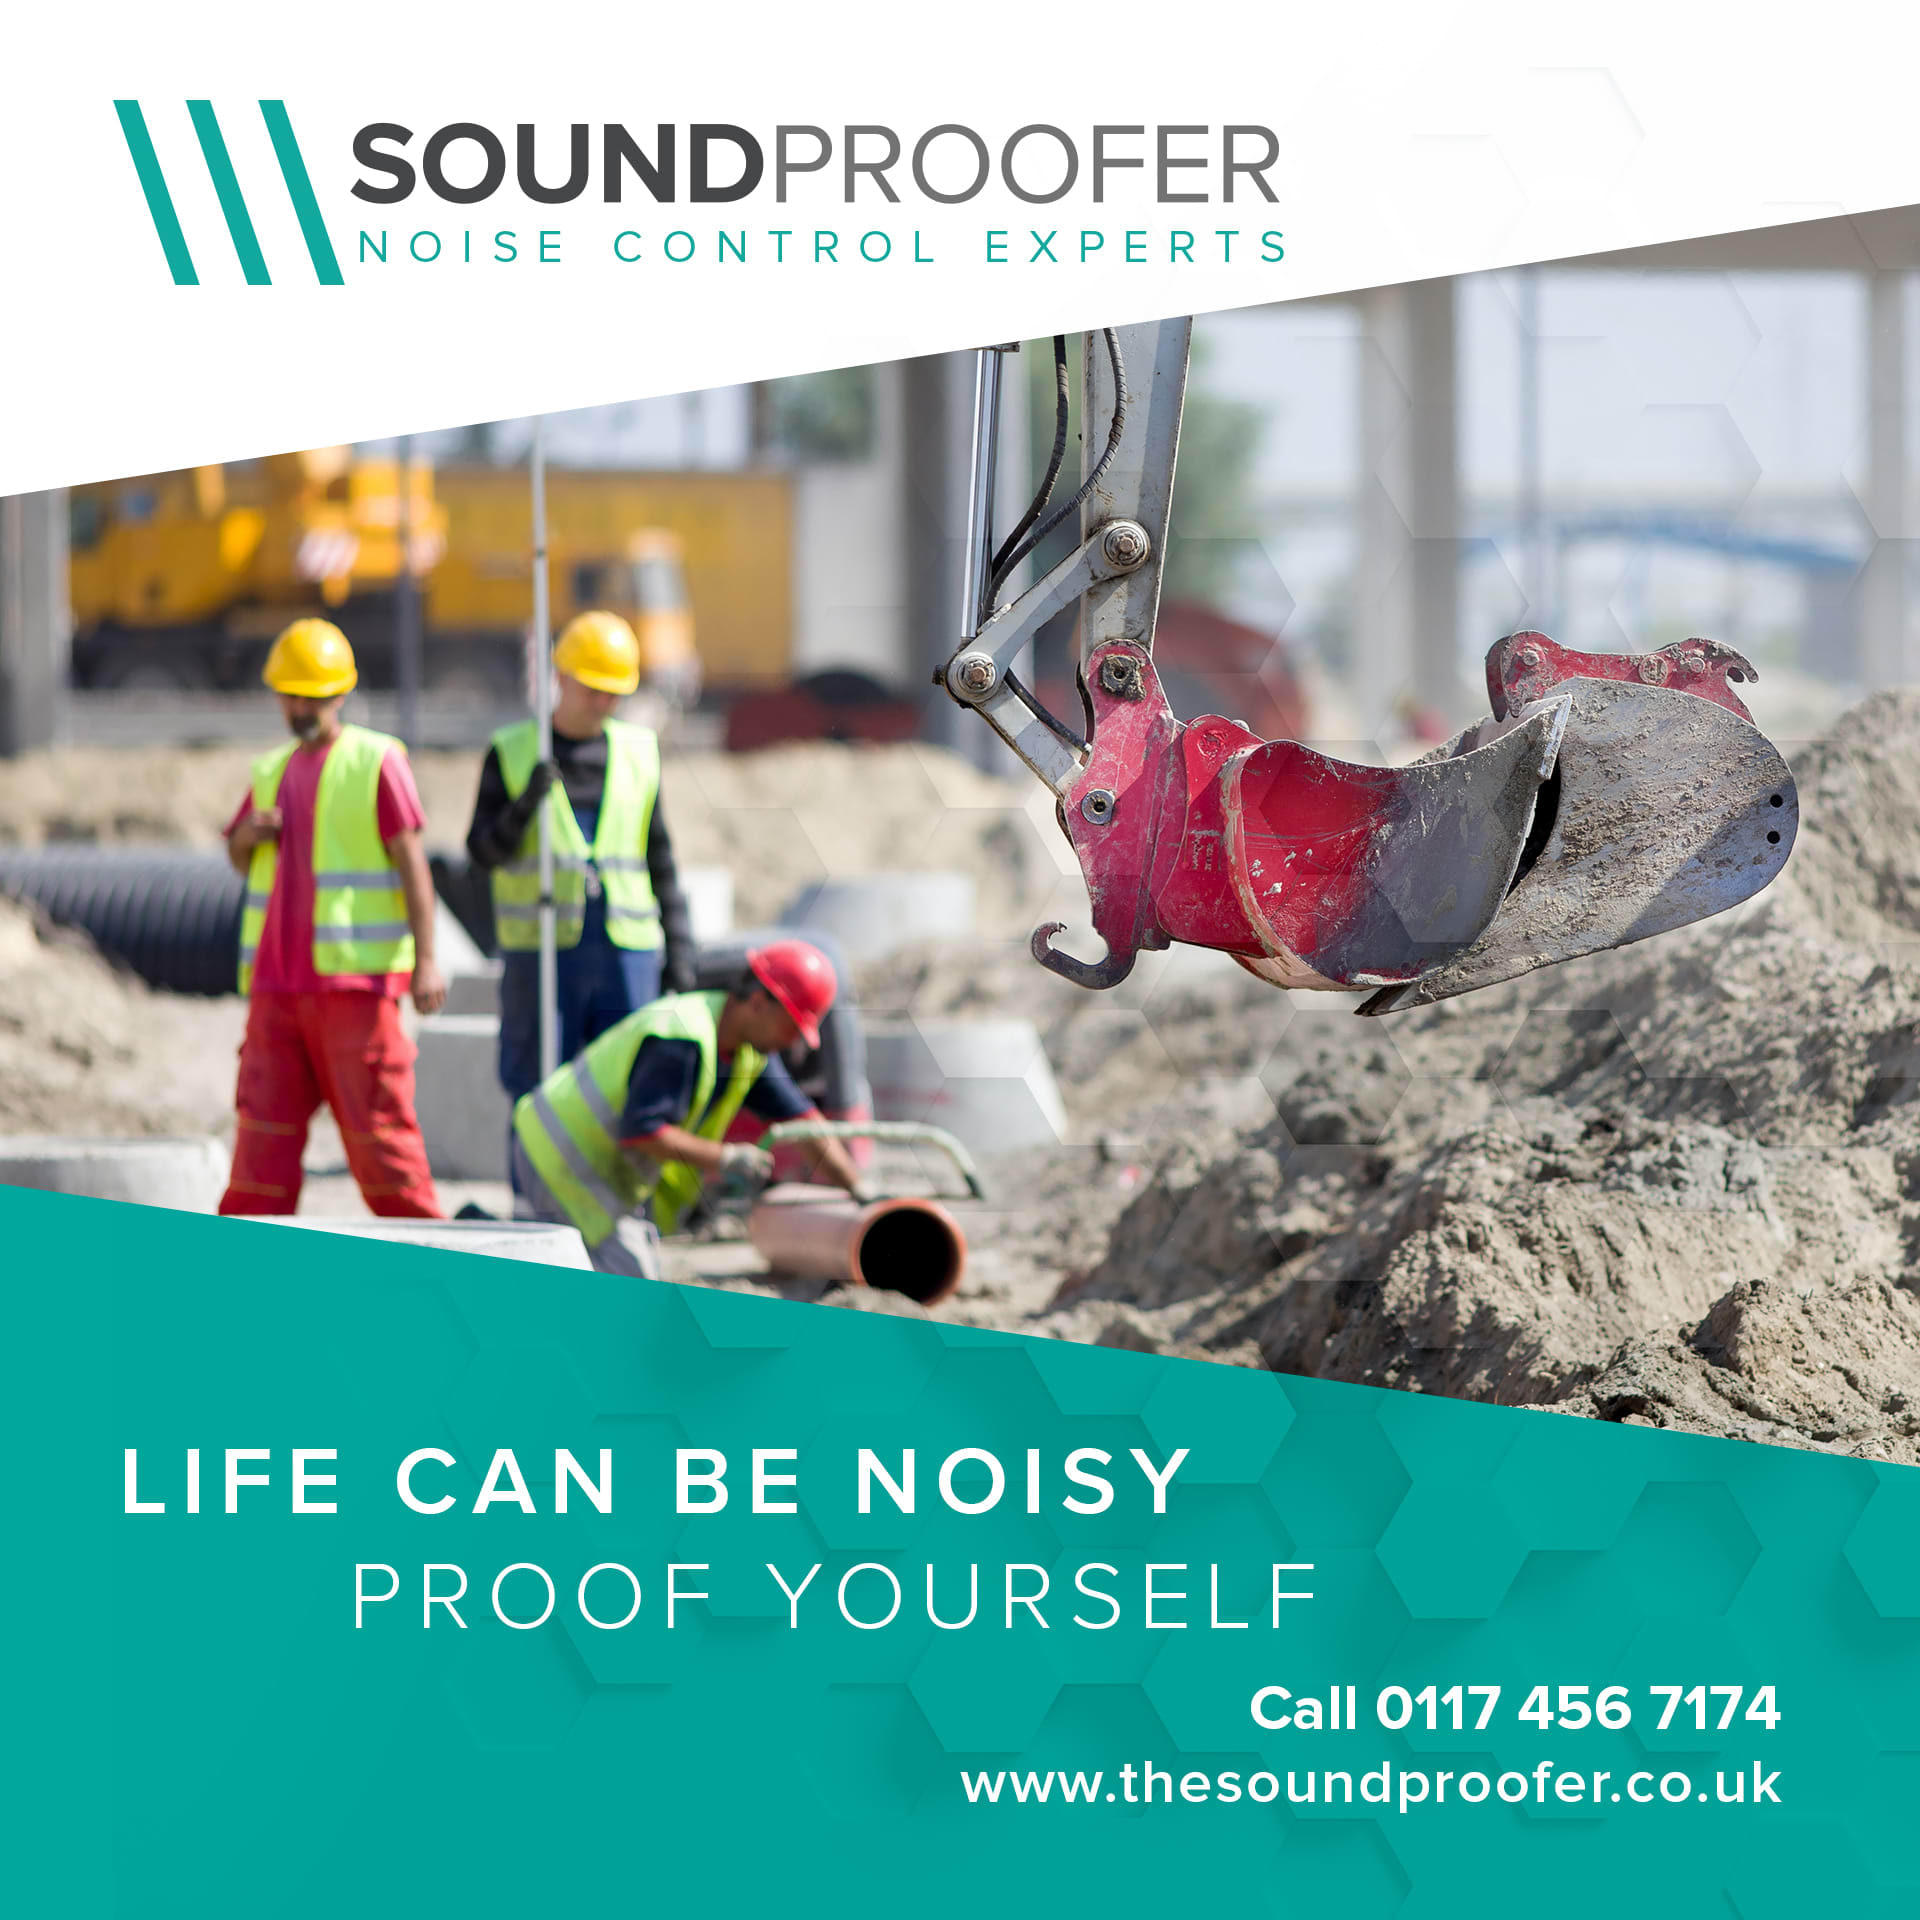 The Soundproofer